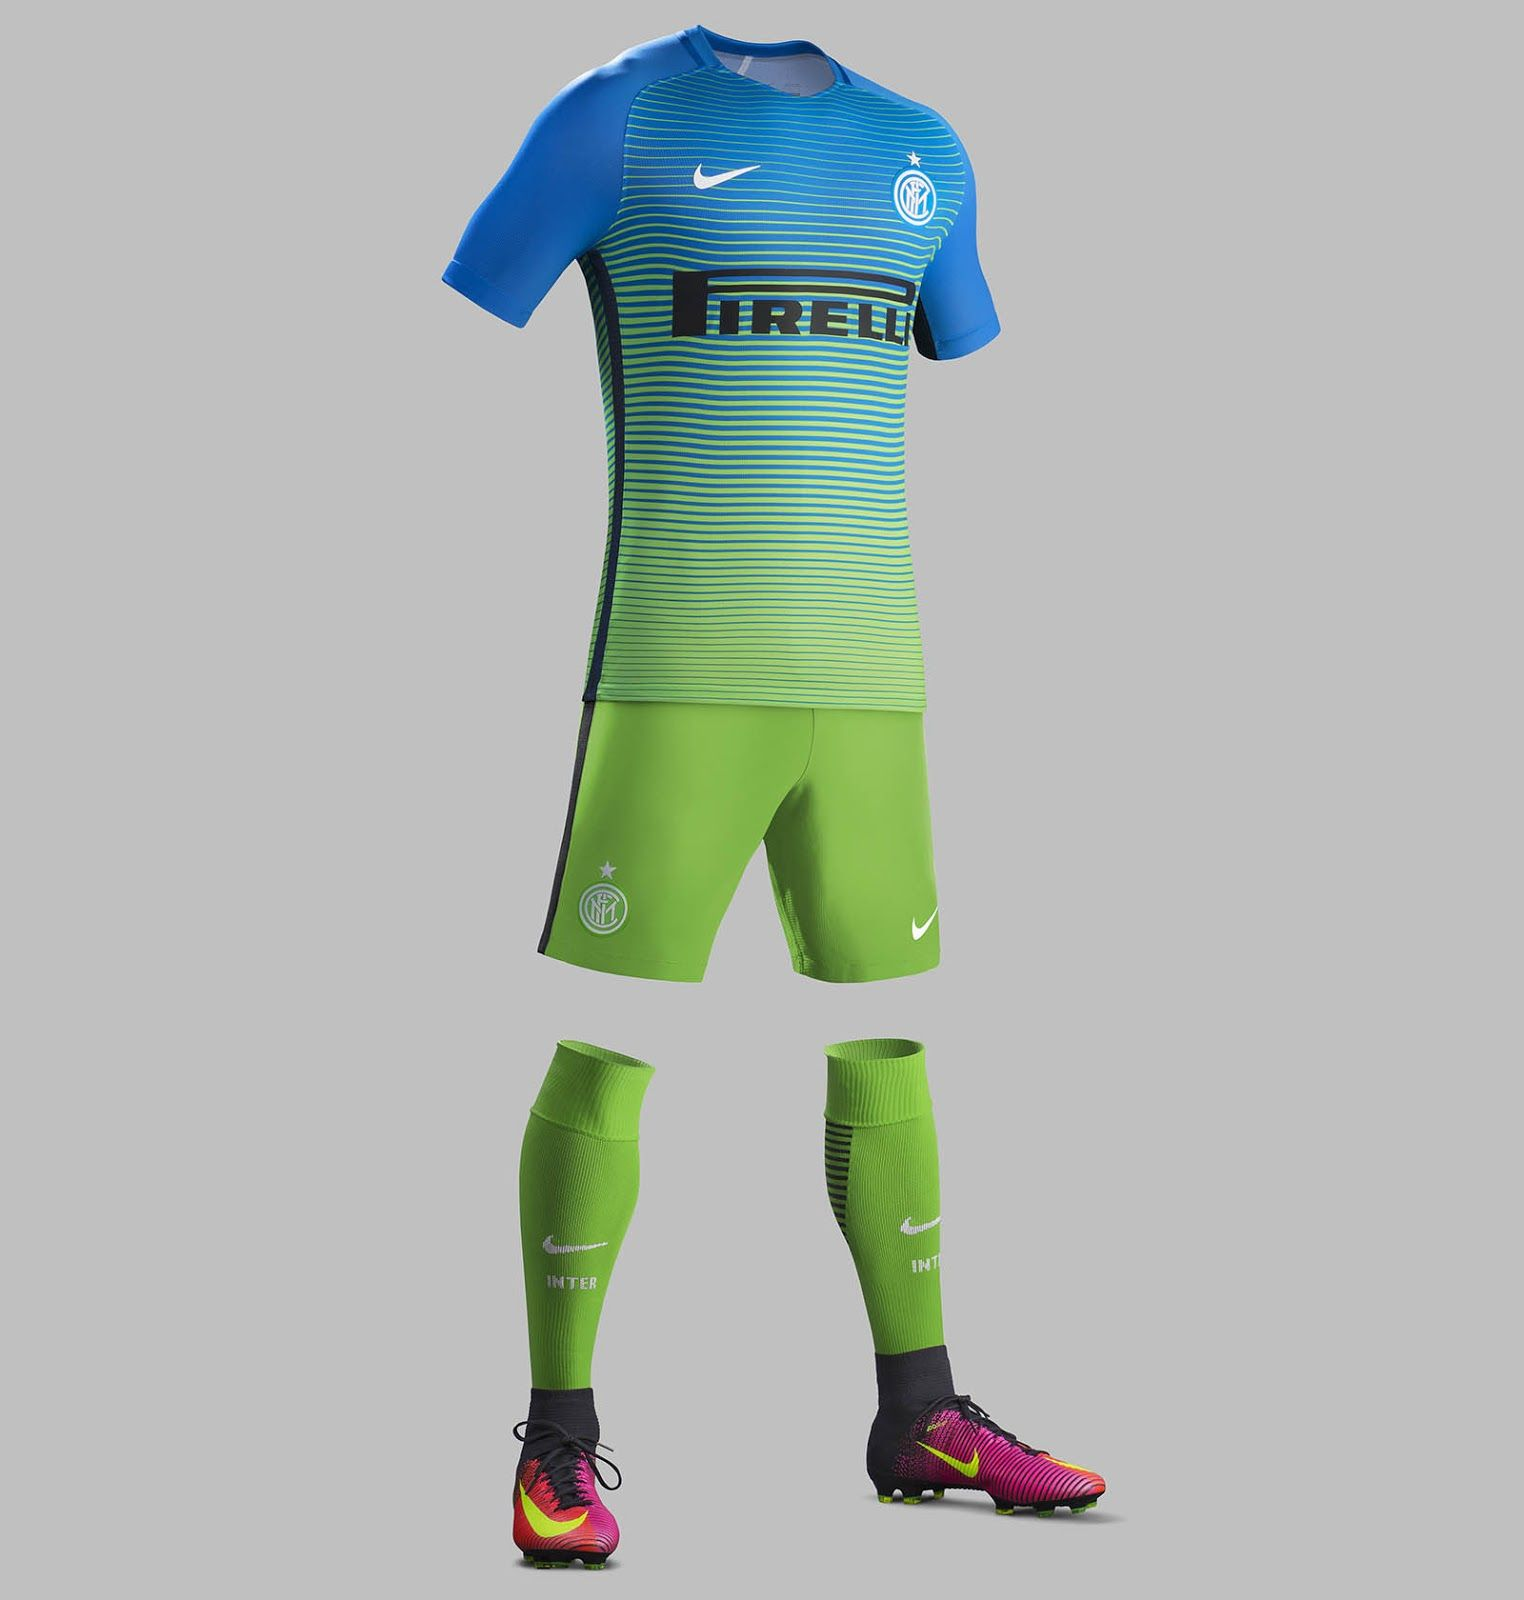 The New Nike Inter Milan 16 17 Third Kit Introduces A Bold Look In